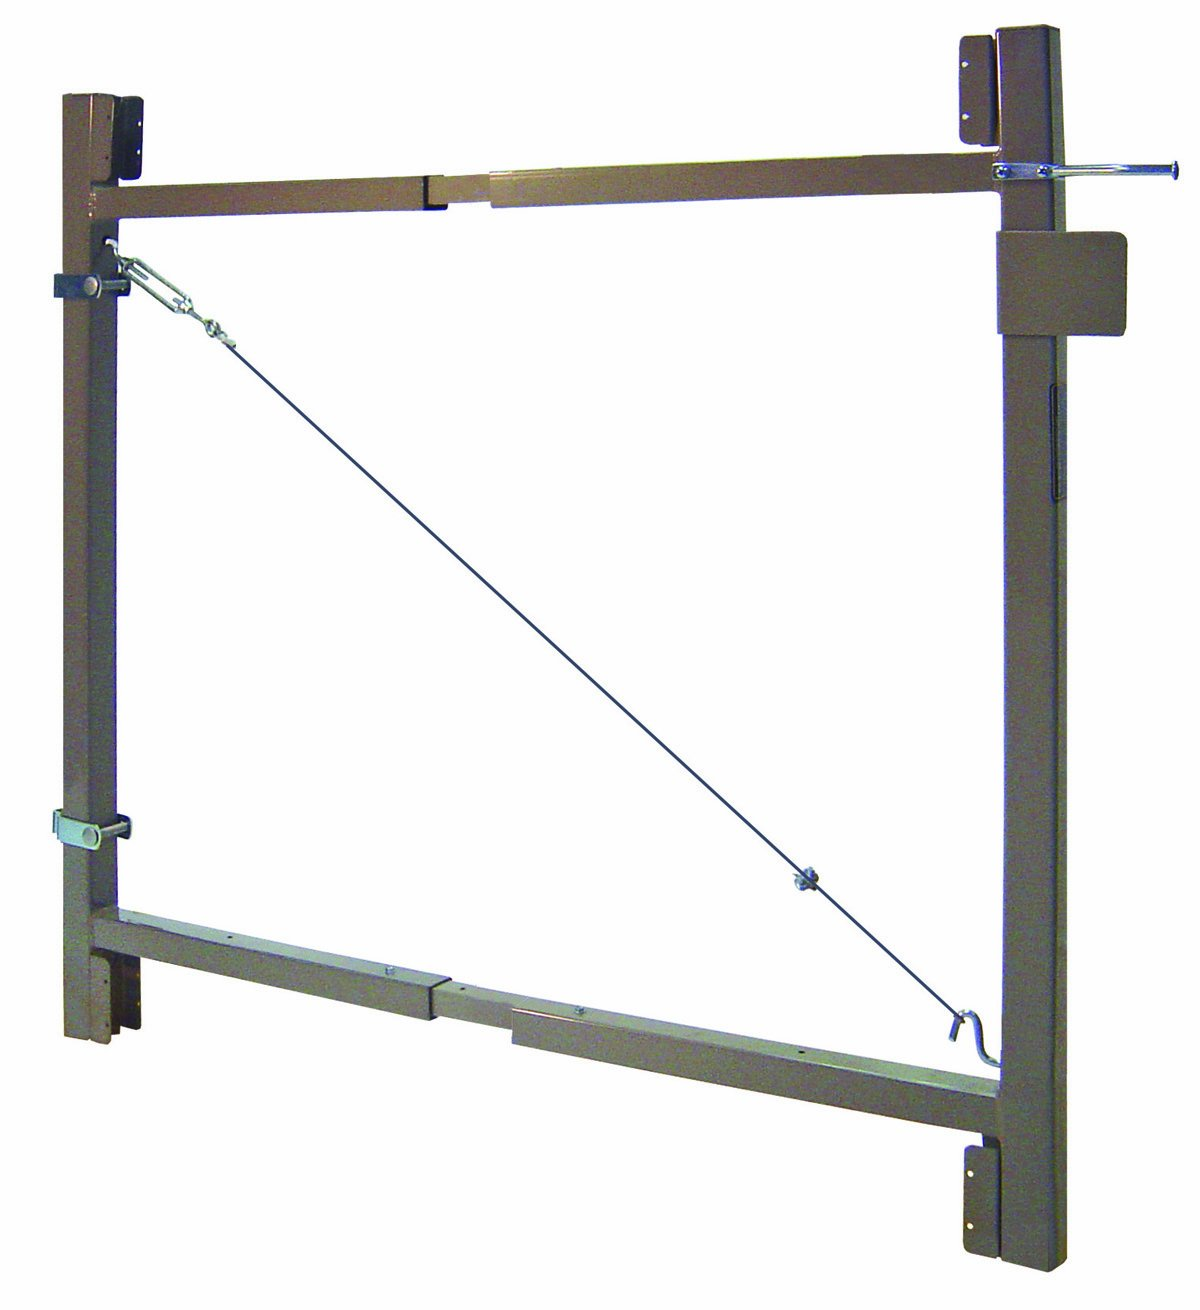 Adjust-A-Gate Steel Frame Gate Building Kit (60-96 wide openings, 3' - 4' high fence) 3' - 4' high fence) AG 60-36